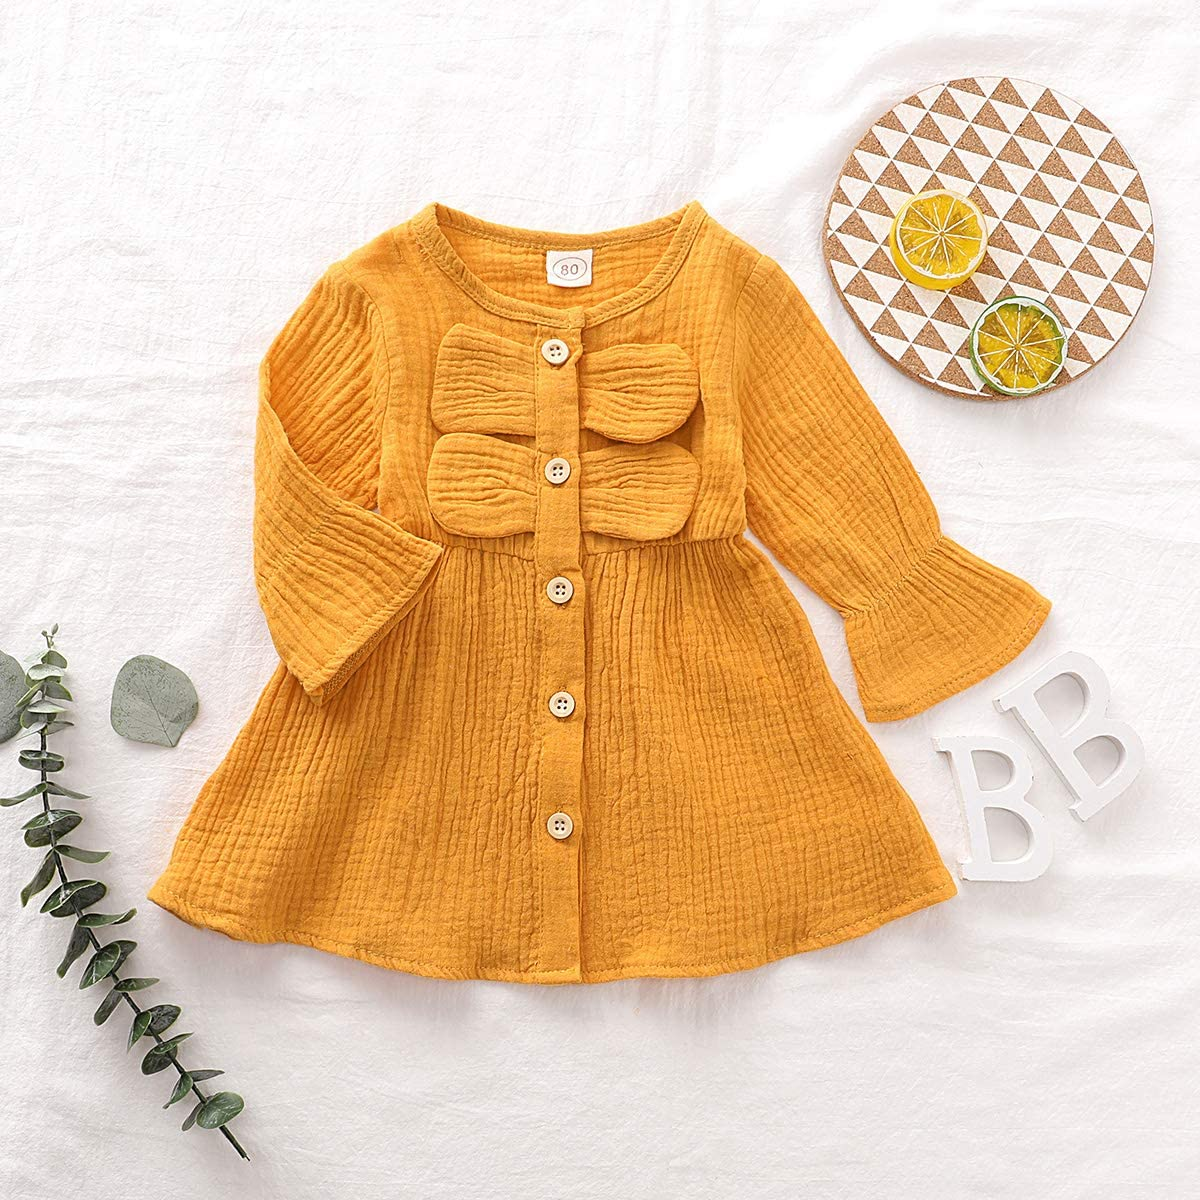 80 cm DaMohony Baby Girls Casual Princess Party Dress with Ruffles Cute Yellow